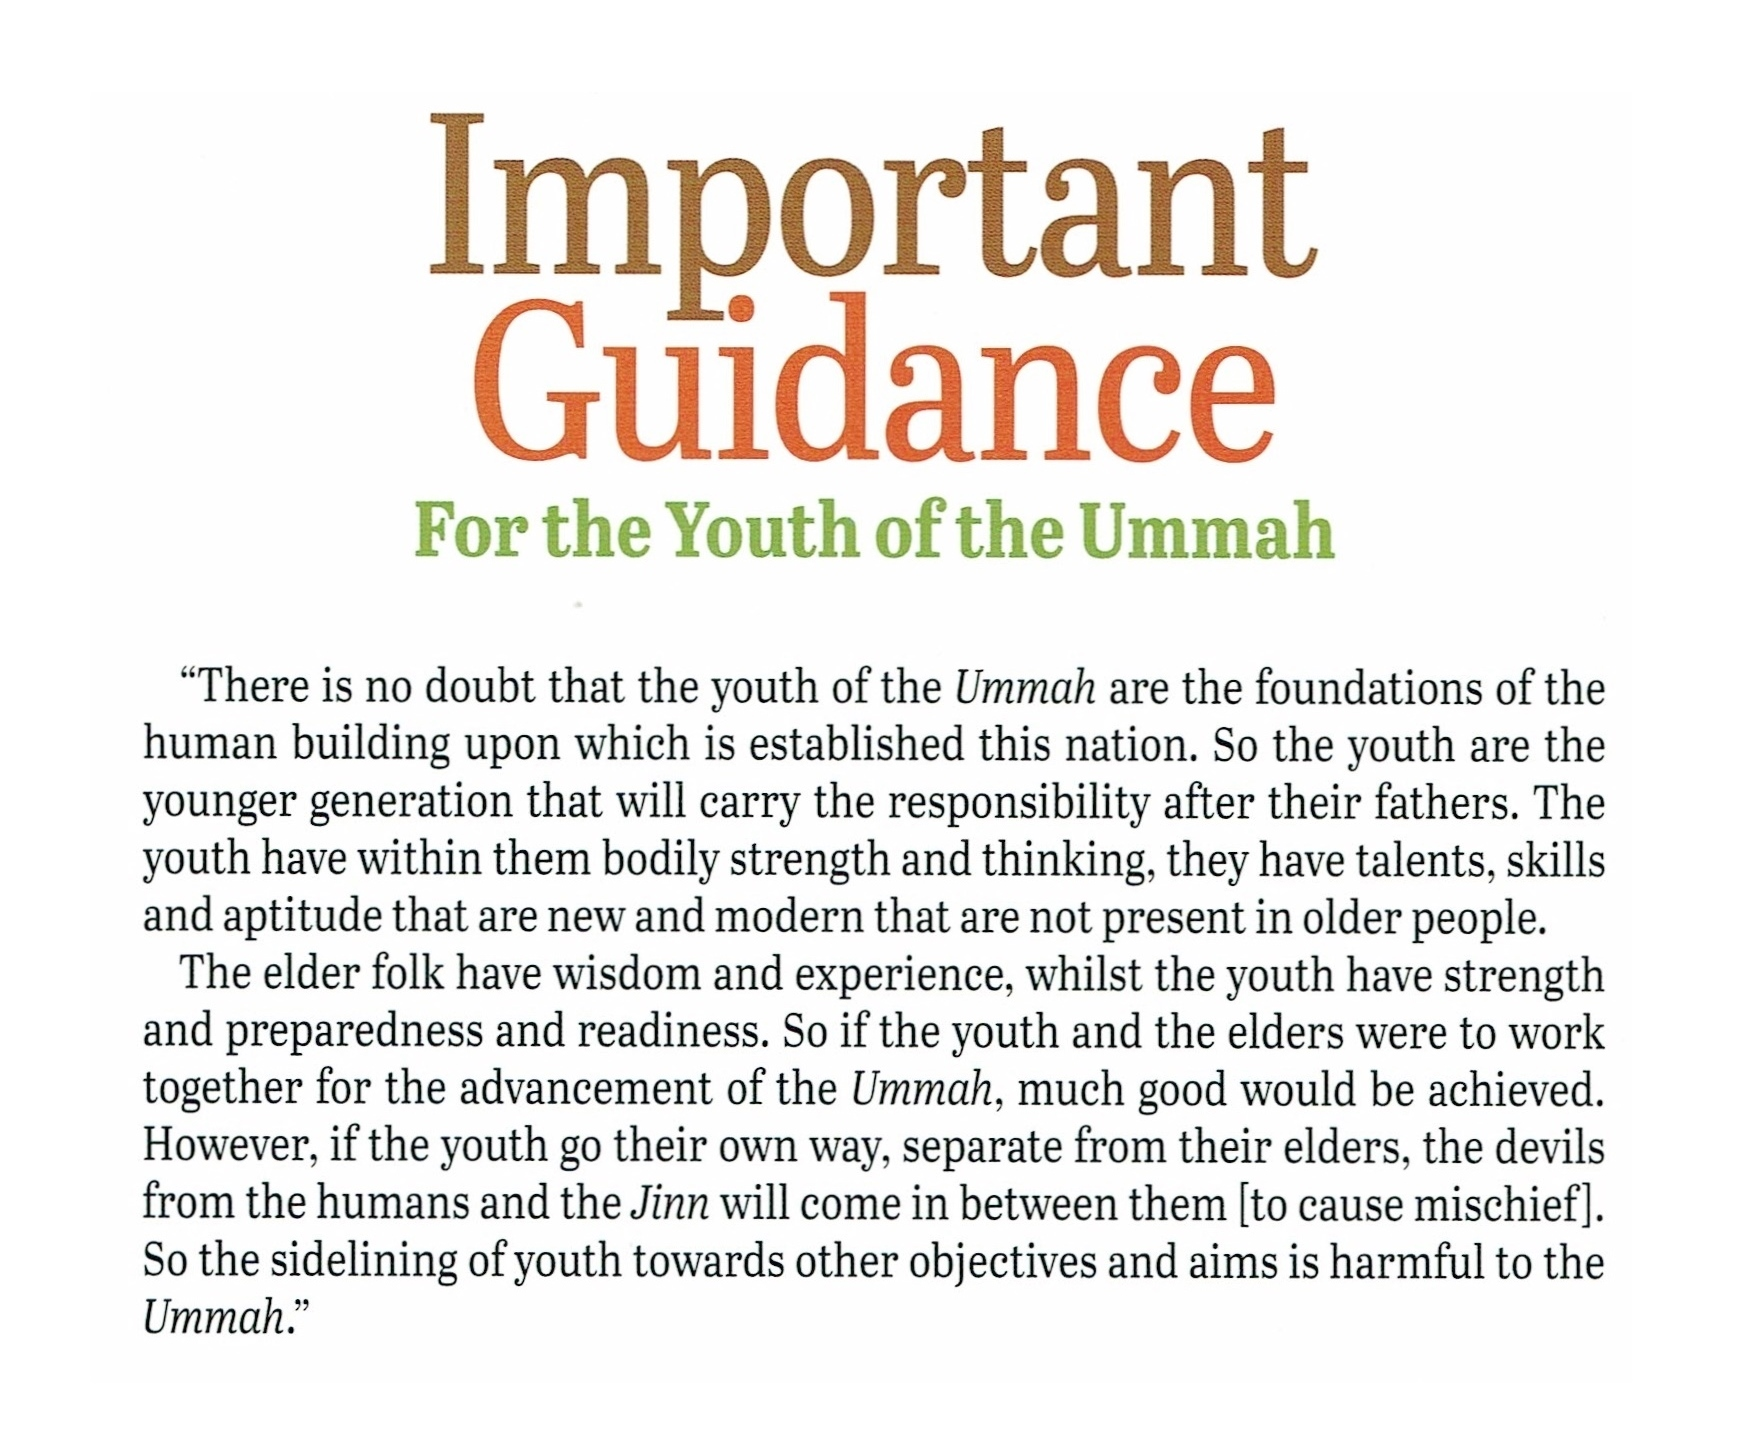 important-guidance-for-the-youth-of-the-ummah-2-copy.jpg